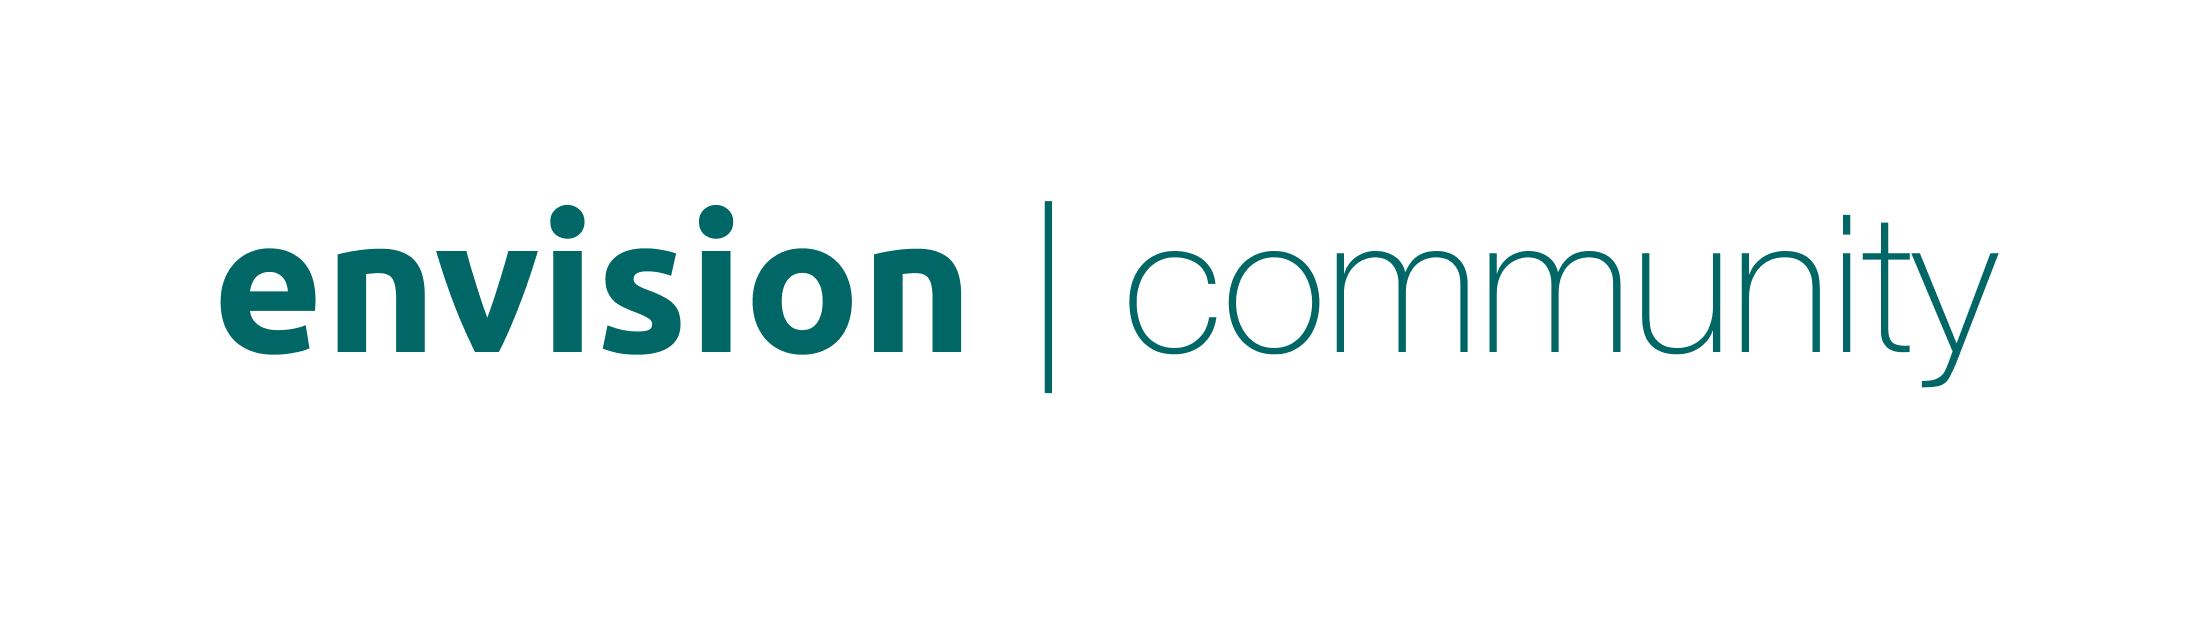 The logo of Envision Community, which is Envision in bold letters and the word community next to it.